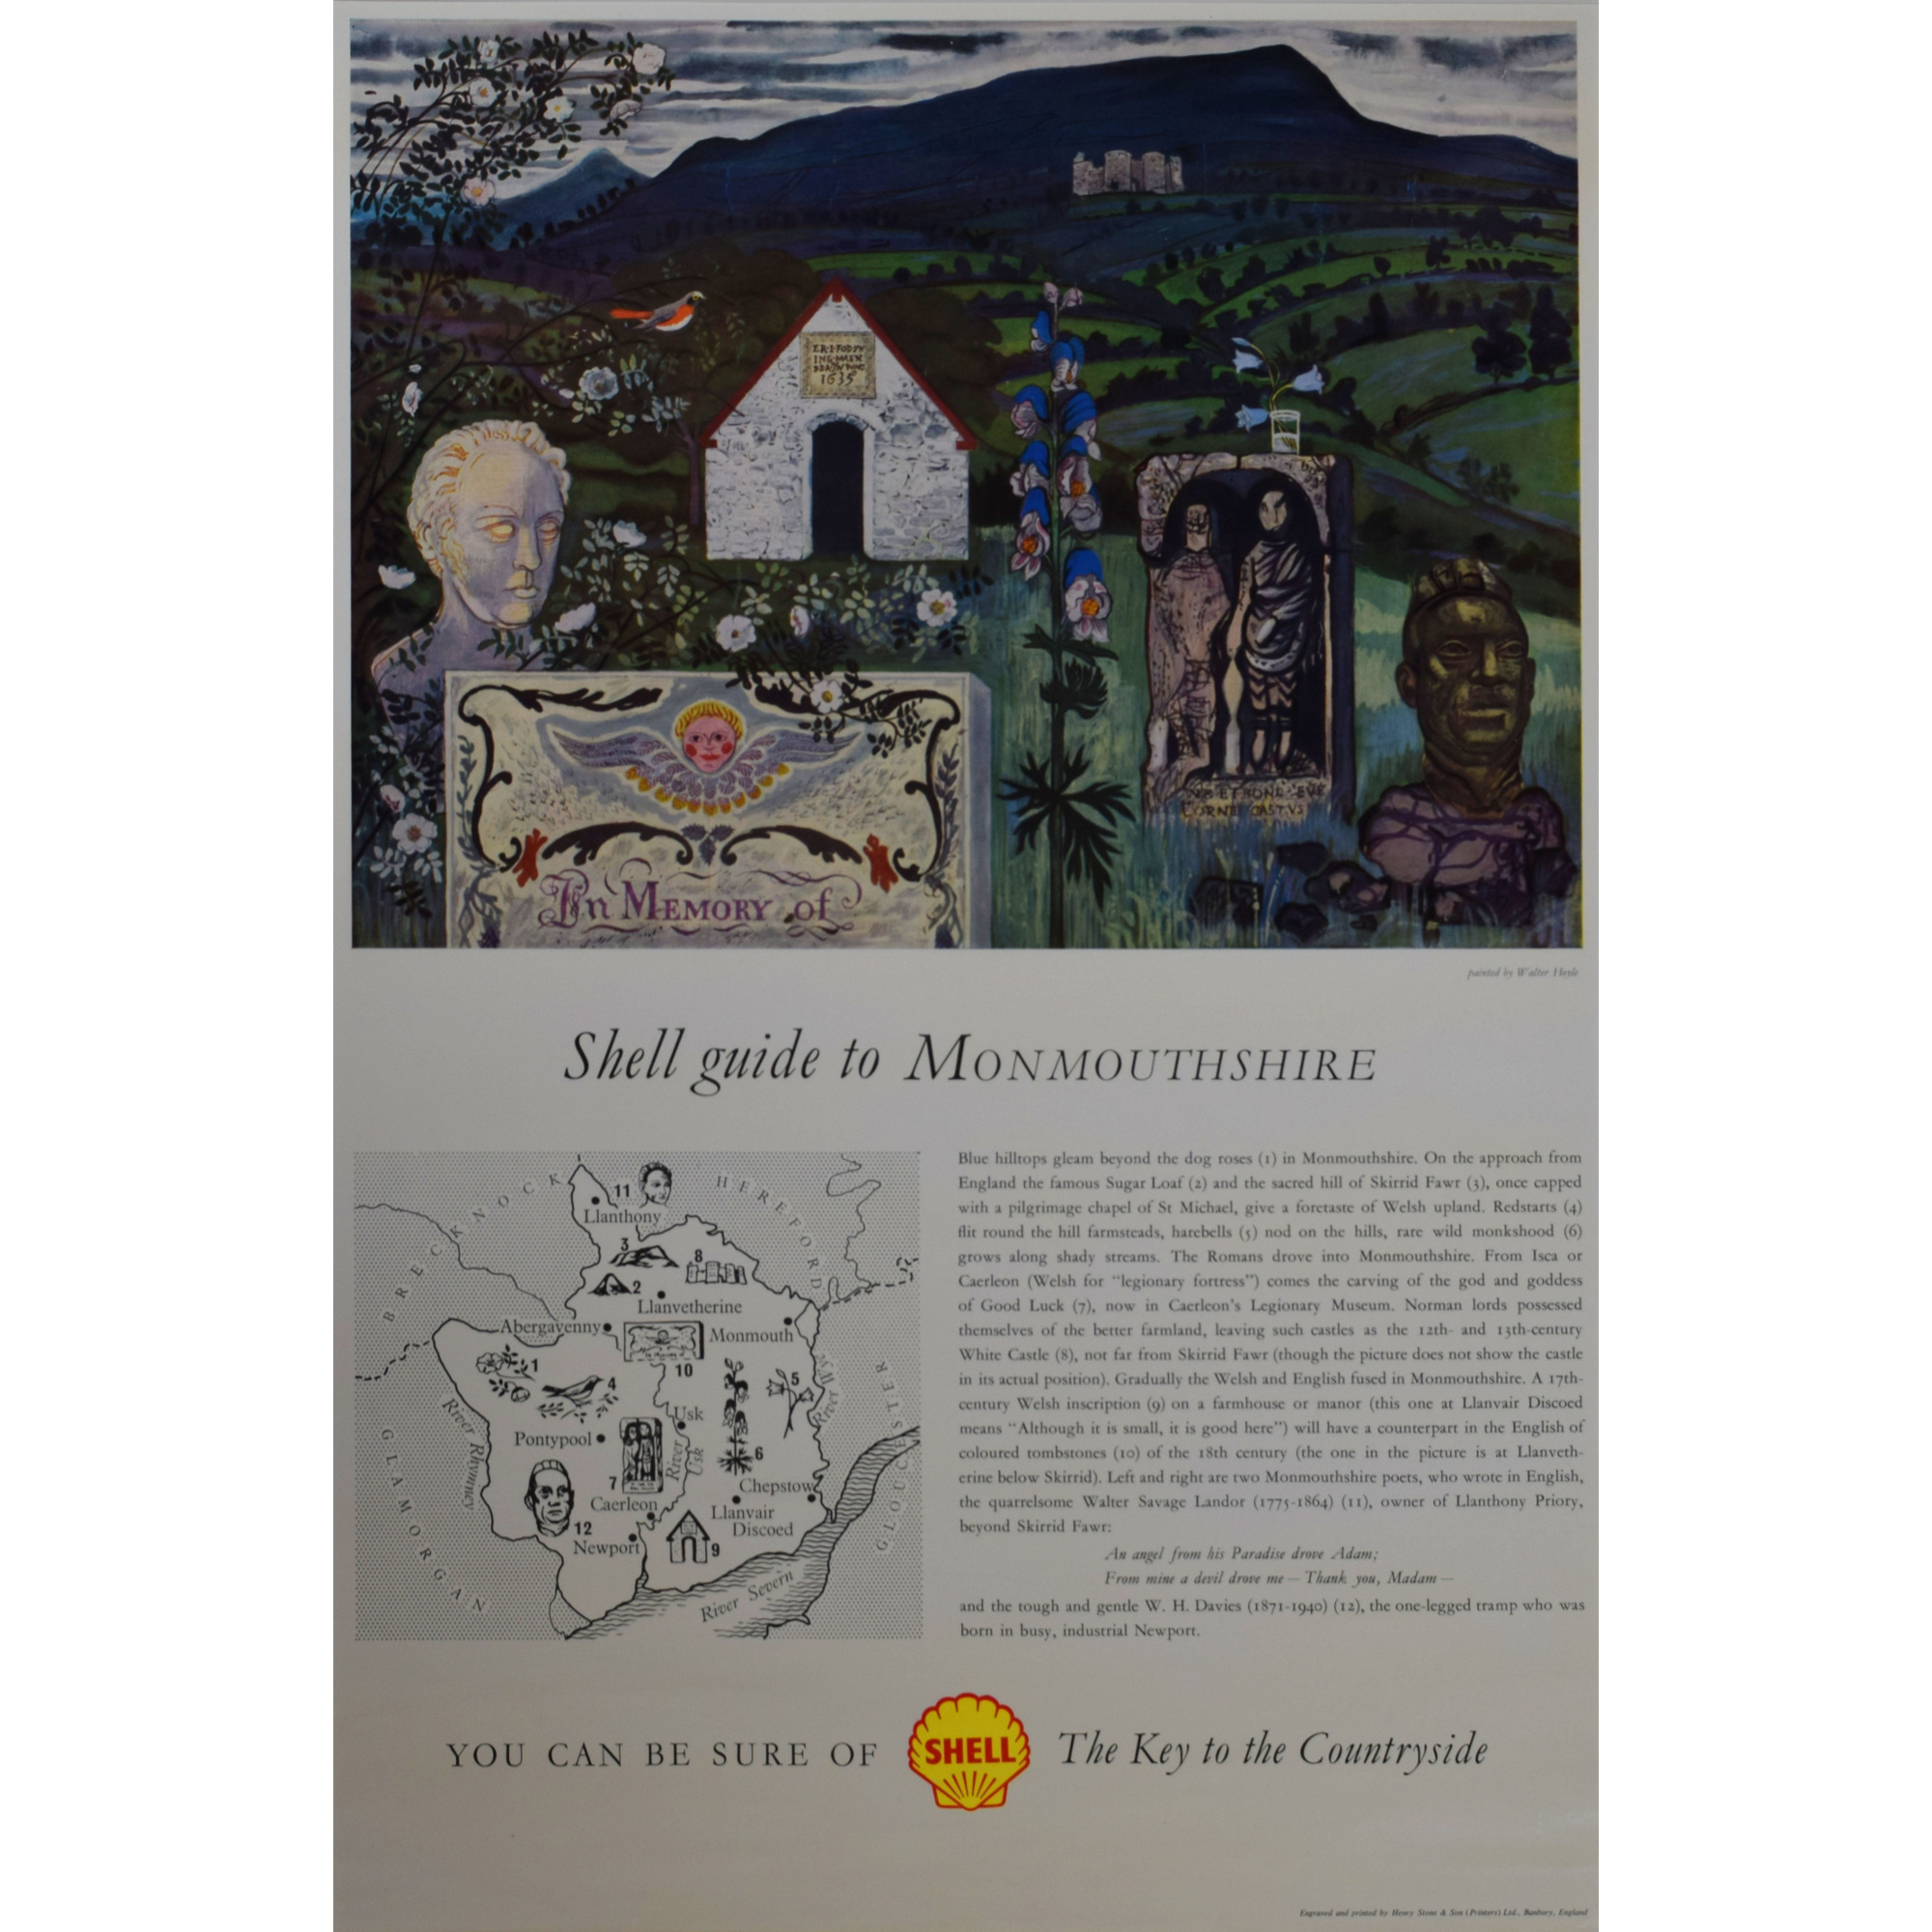 Walter Hoyle Shell Guide to Monmouthshire advertising poster for sale